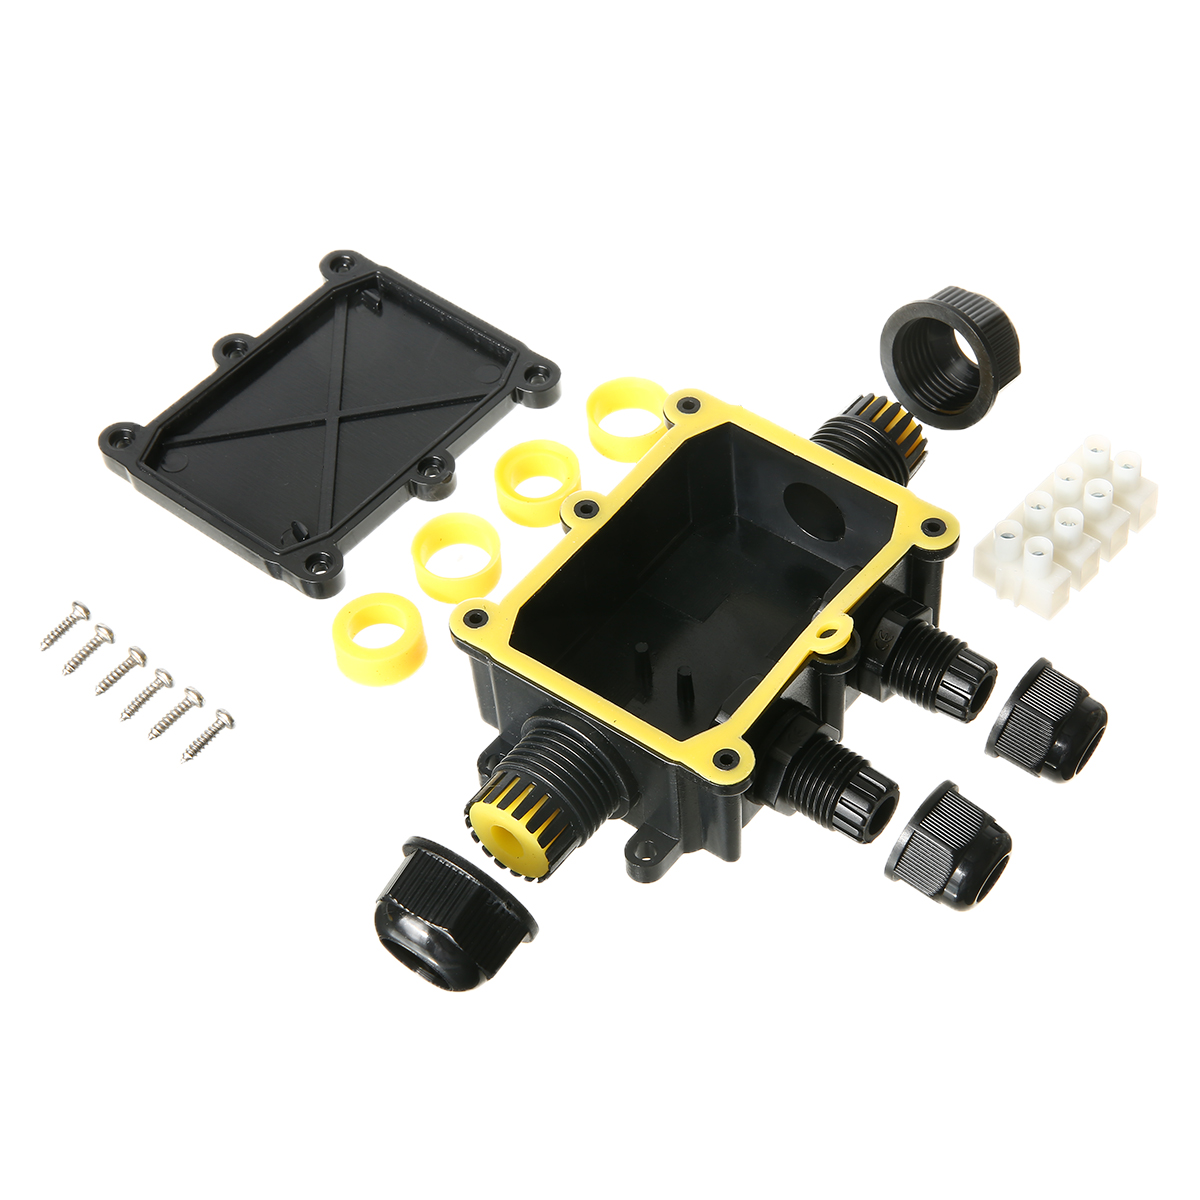 New 1pc Waterproof Junction Box Terminal 4 Way Underground Cable Protection Building Connectors IP68 For Street Lawn Flood Light in Connectors from Lights Lighting